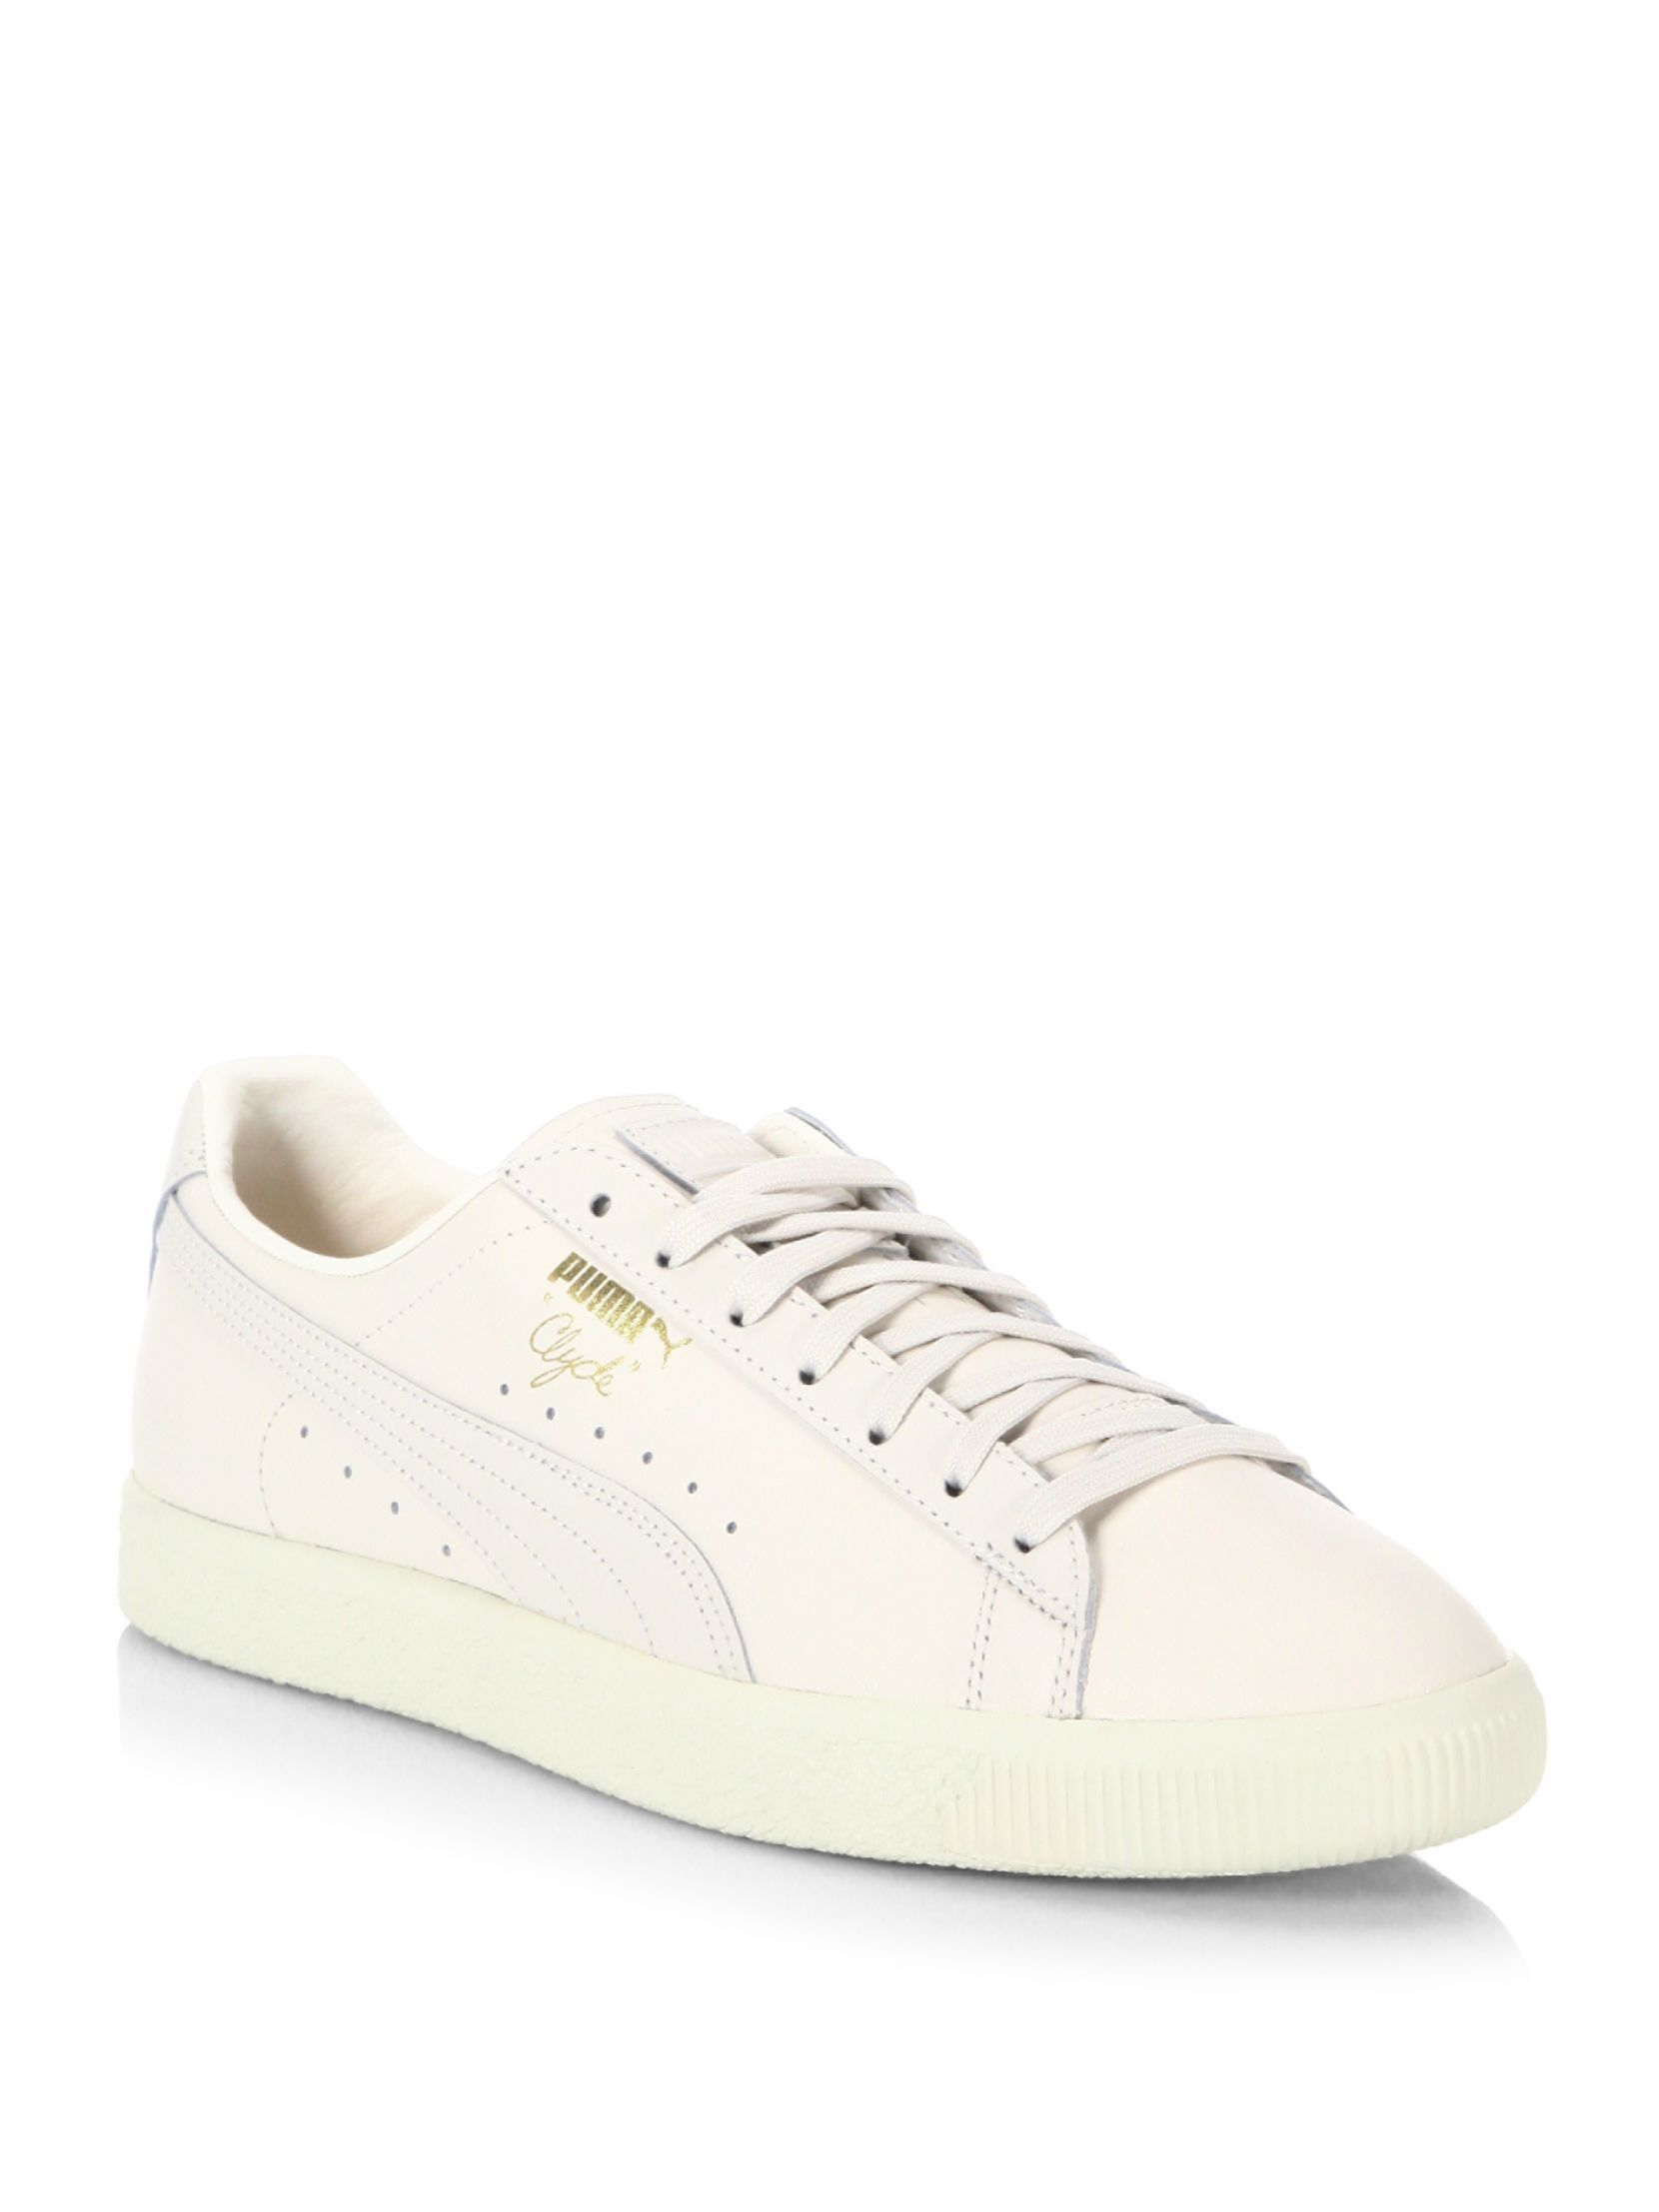 PUMA Clyde Natural Leather Sneakers  c8a411f55